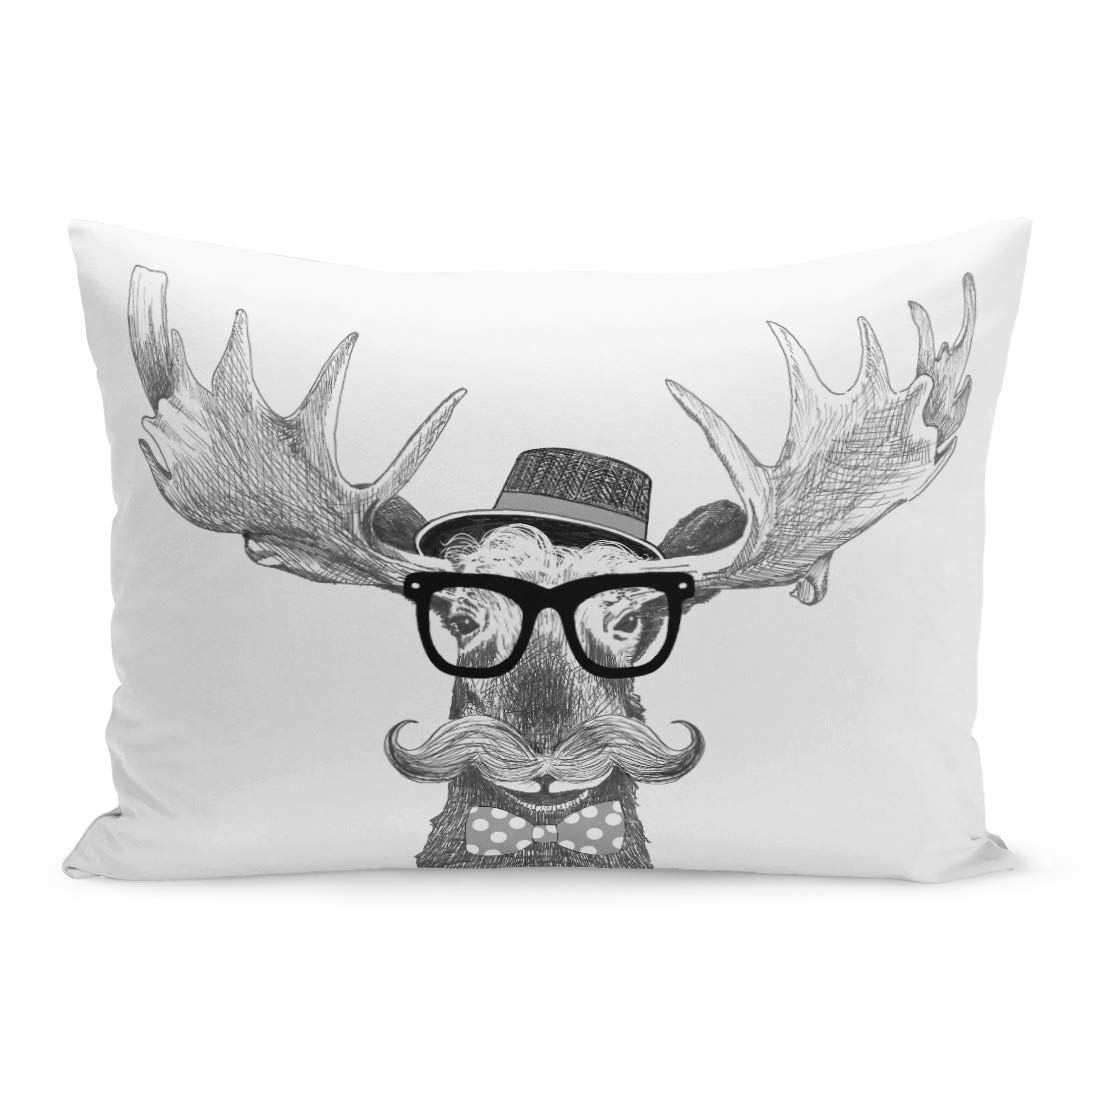 Amazon.com: Semtomn Throw Pillow Covers Hipster Glasses on ...